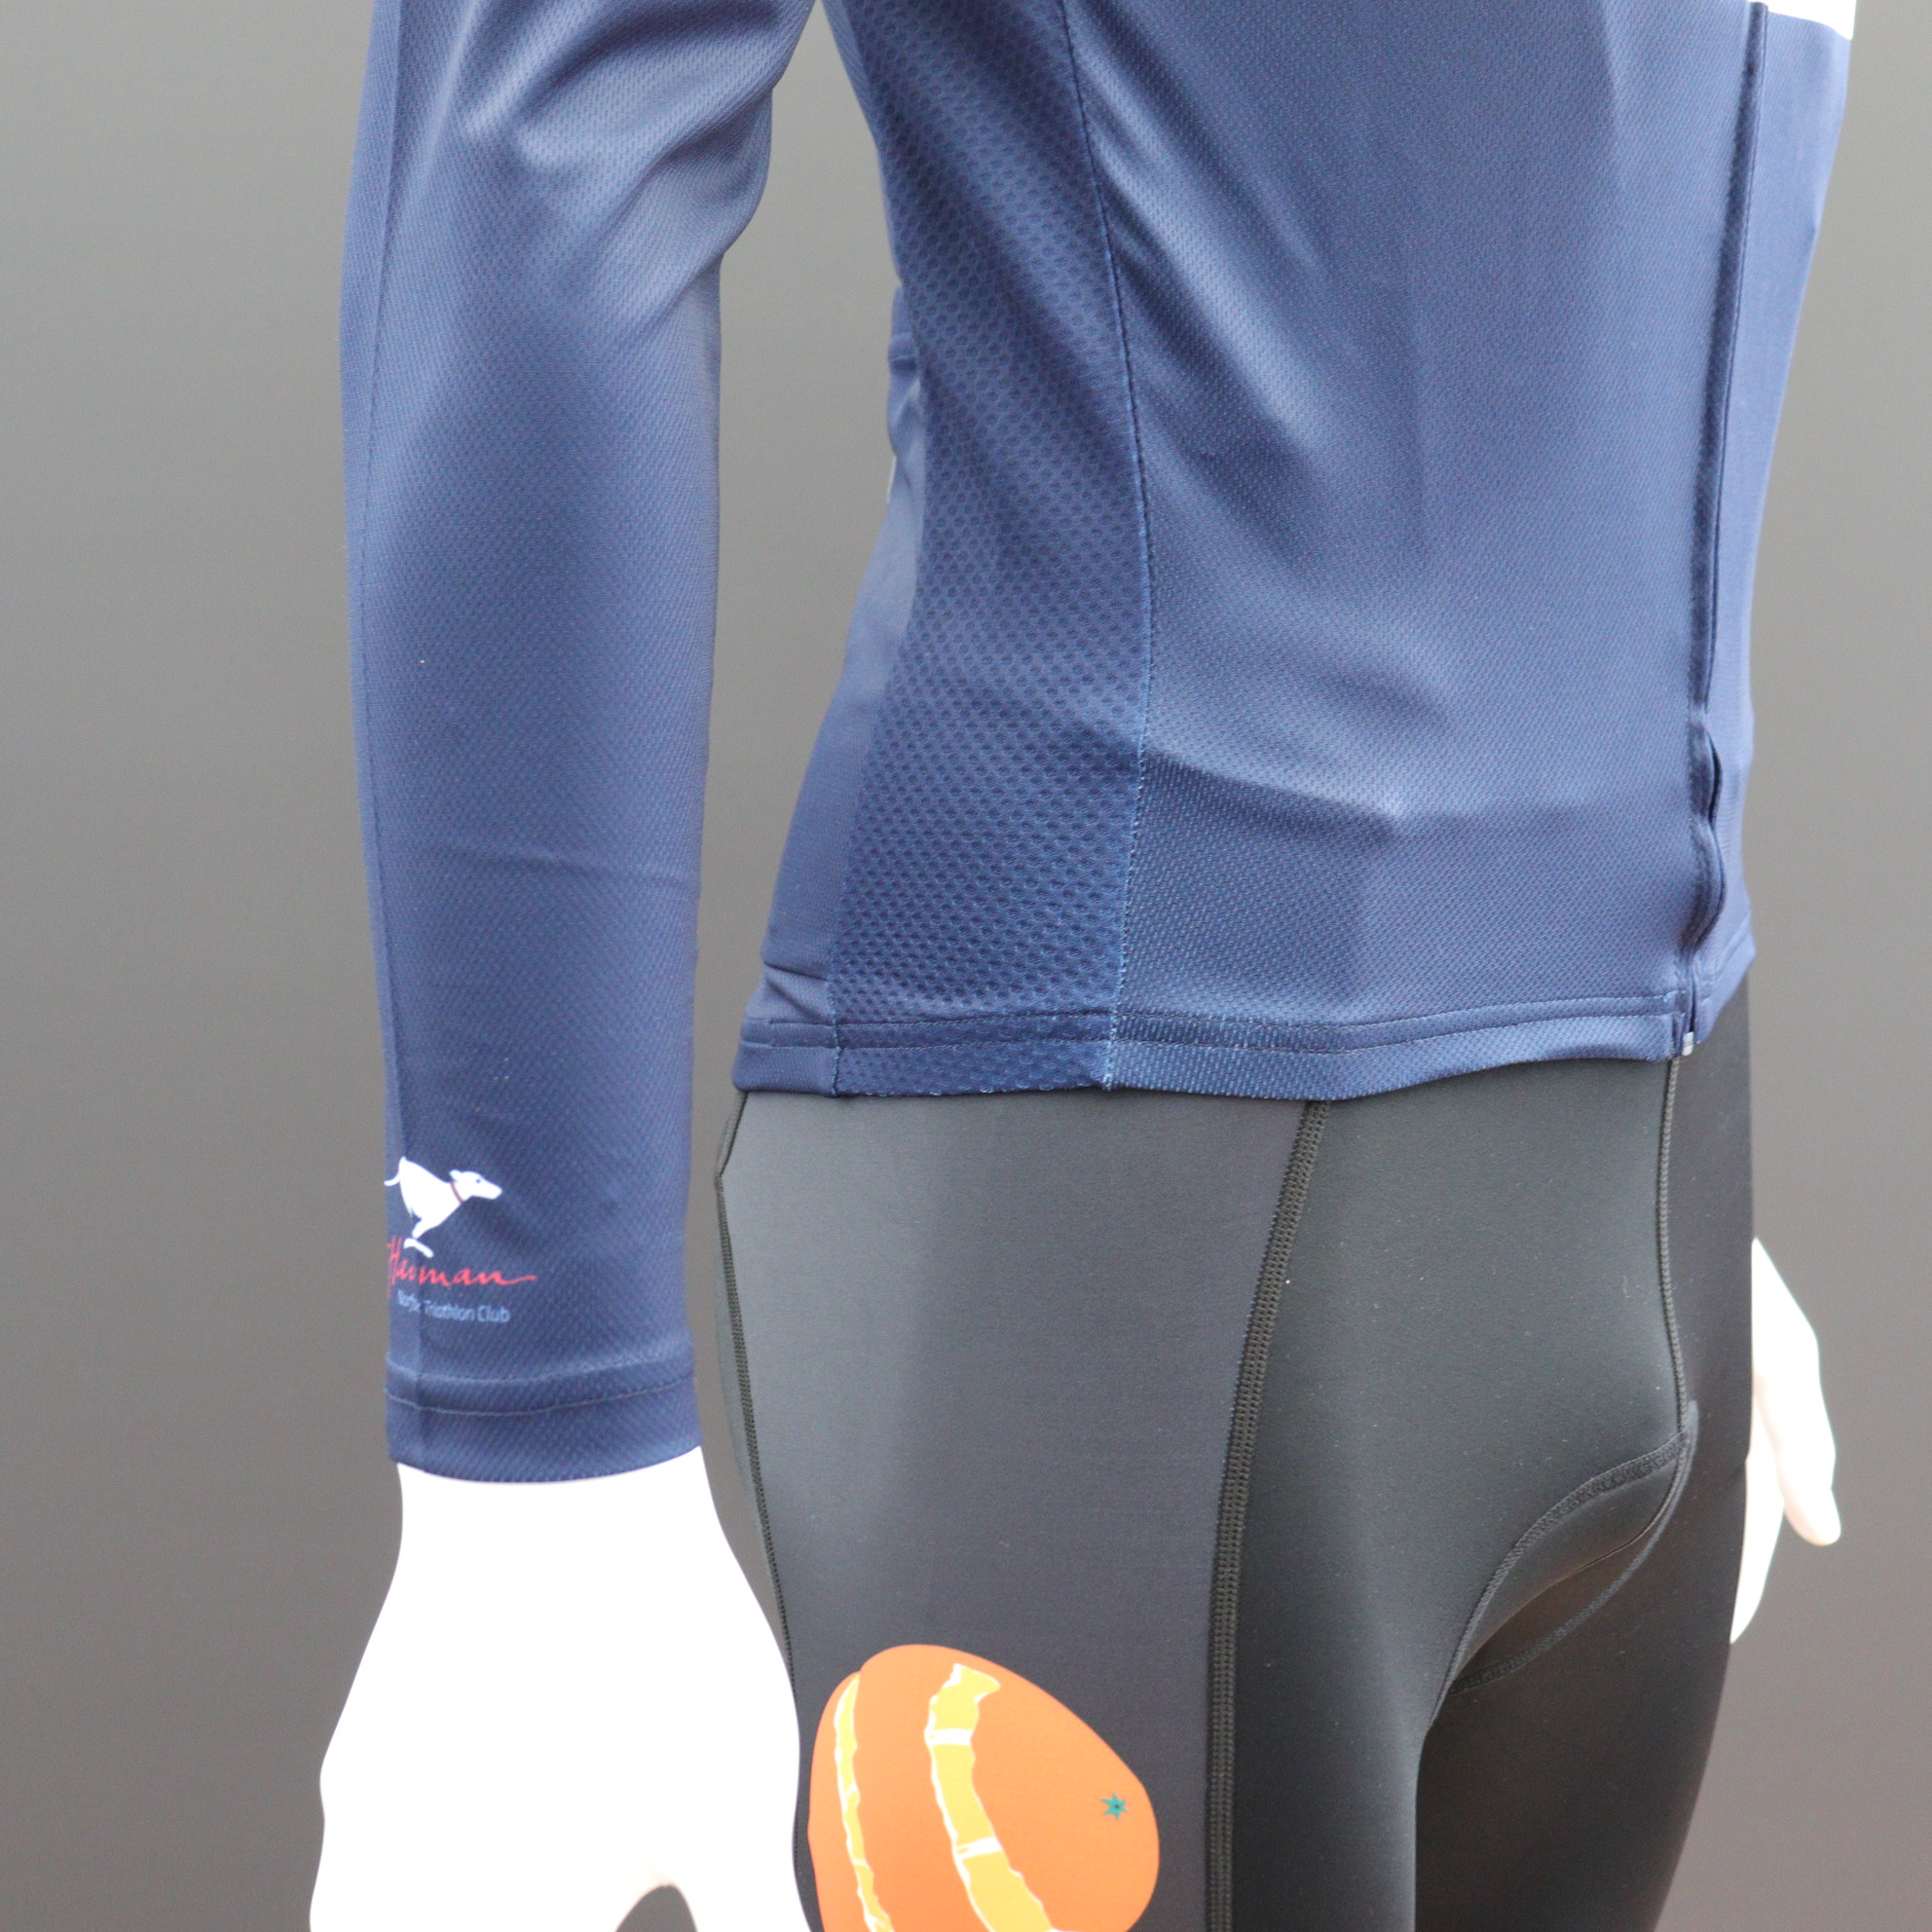 Long Sleeve Classic Cycle Jerseys - Comfort Waist